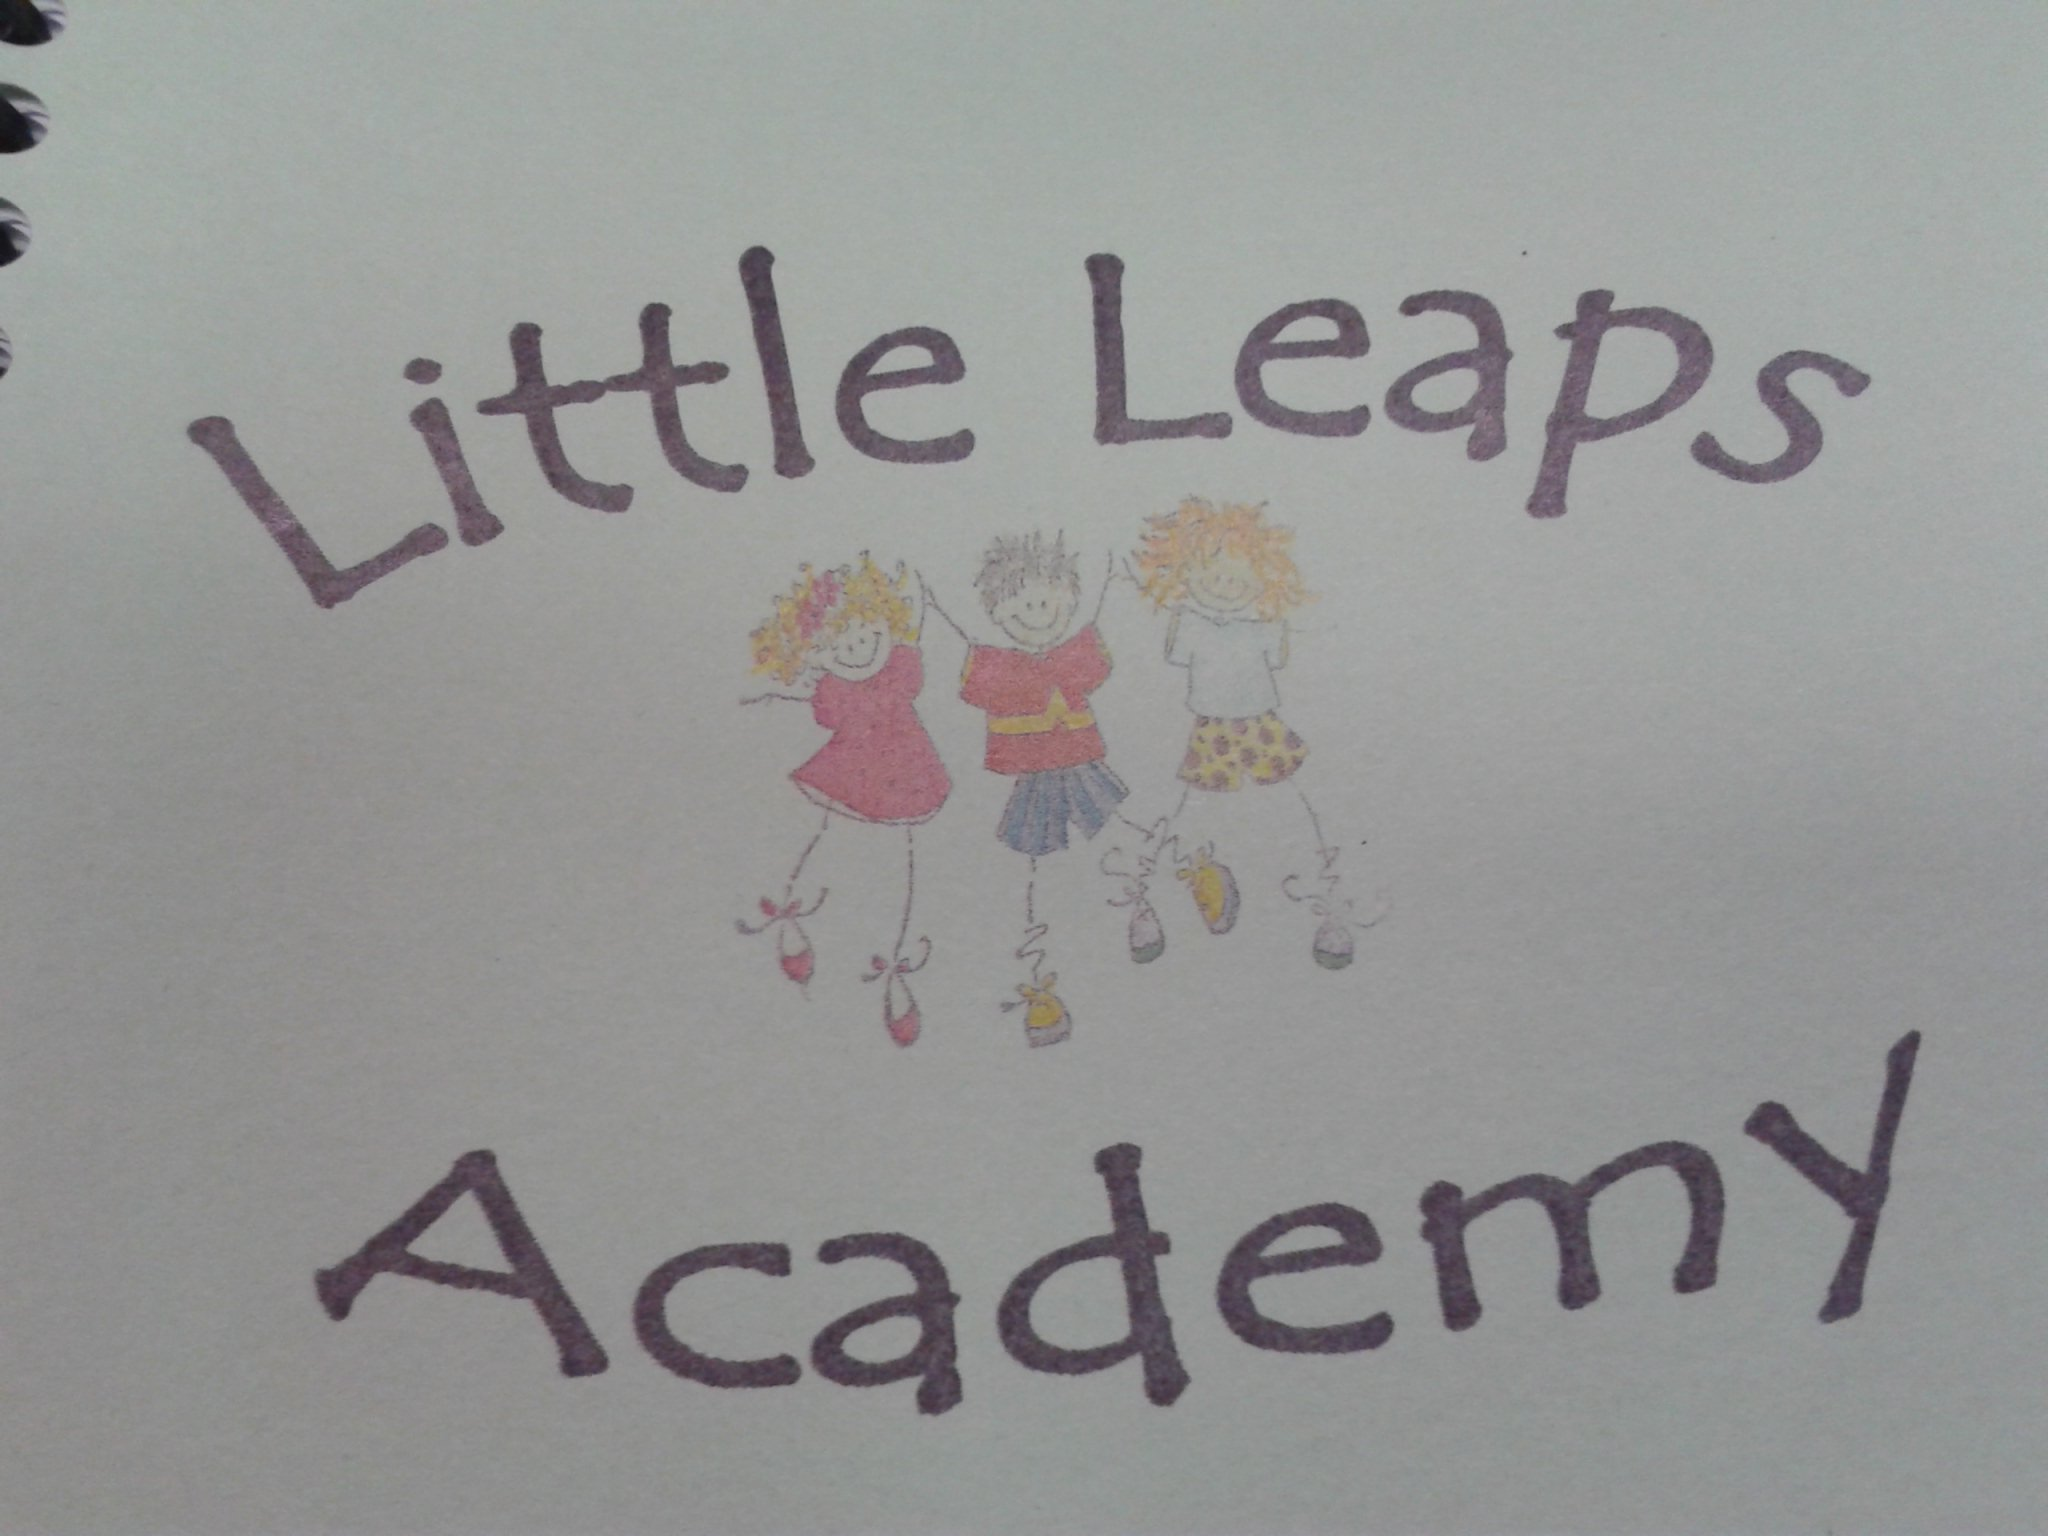 Little Leaps Academy